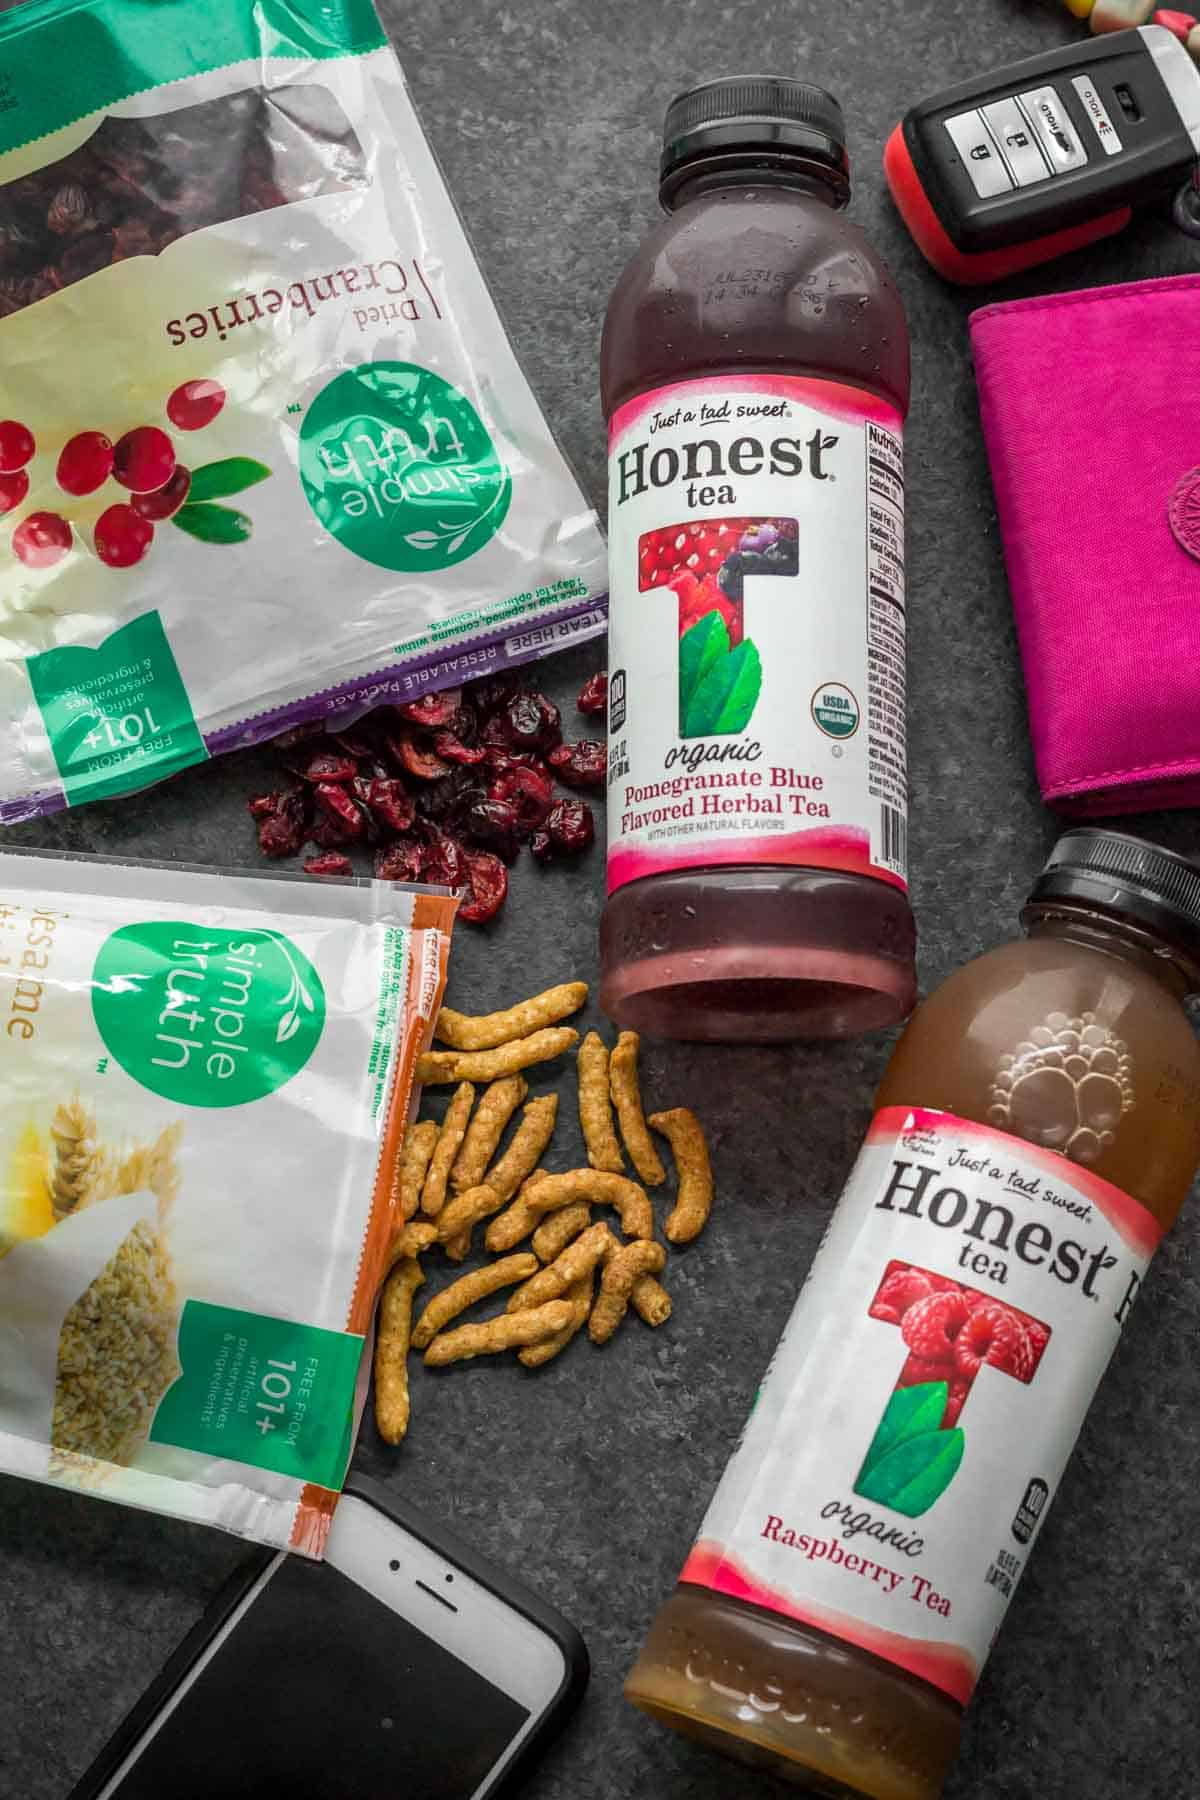 Open packets of Sesame sticks and cranberries with contents spilling out. 2 bottles of Honest tea along with car keys, a cell phone and a pink wallet